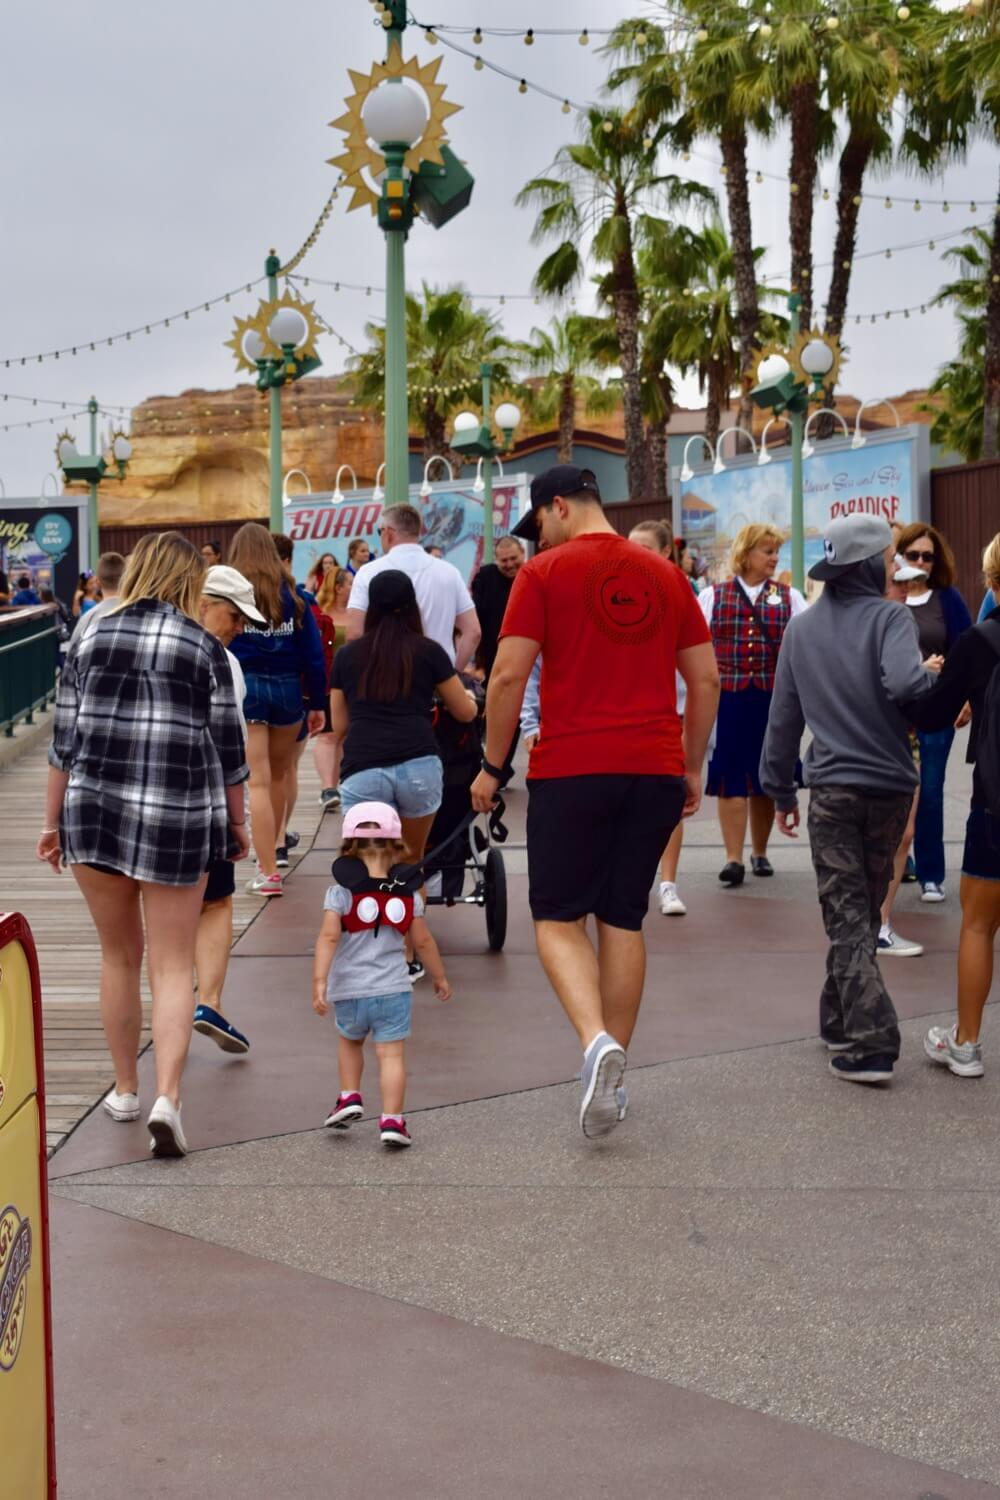 How to Avoid Losing a Child at Disneyland - Disney Califorina Adventure Child on Leash